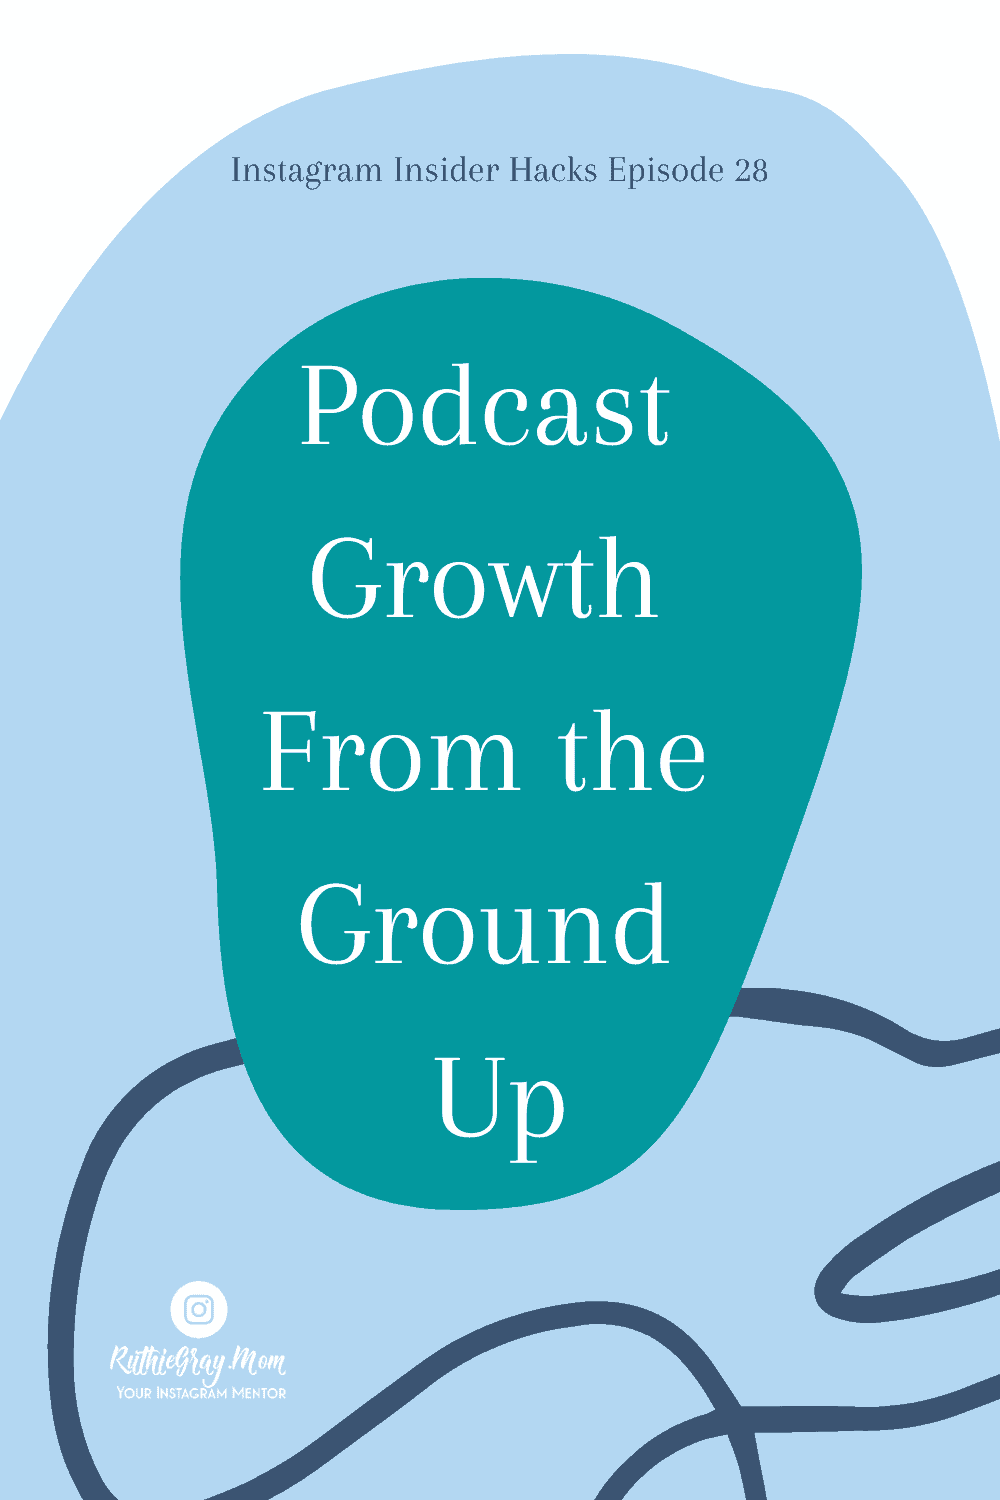 podcast growth from the ground up